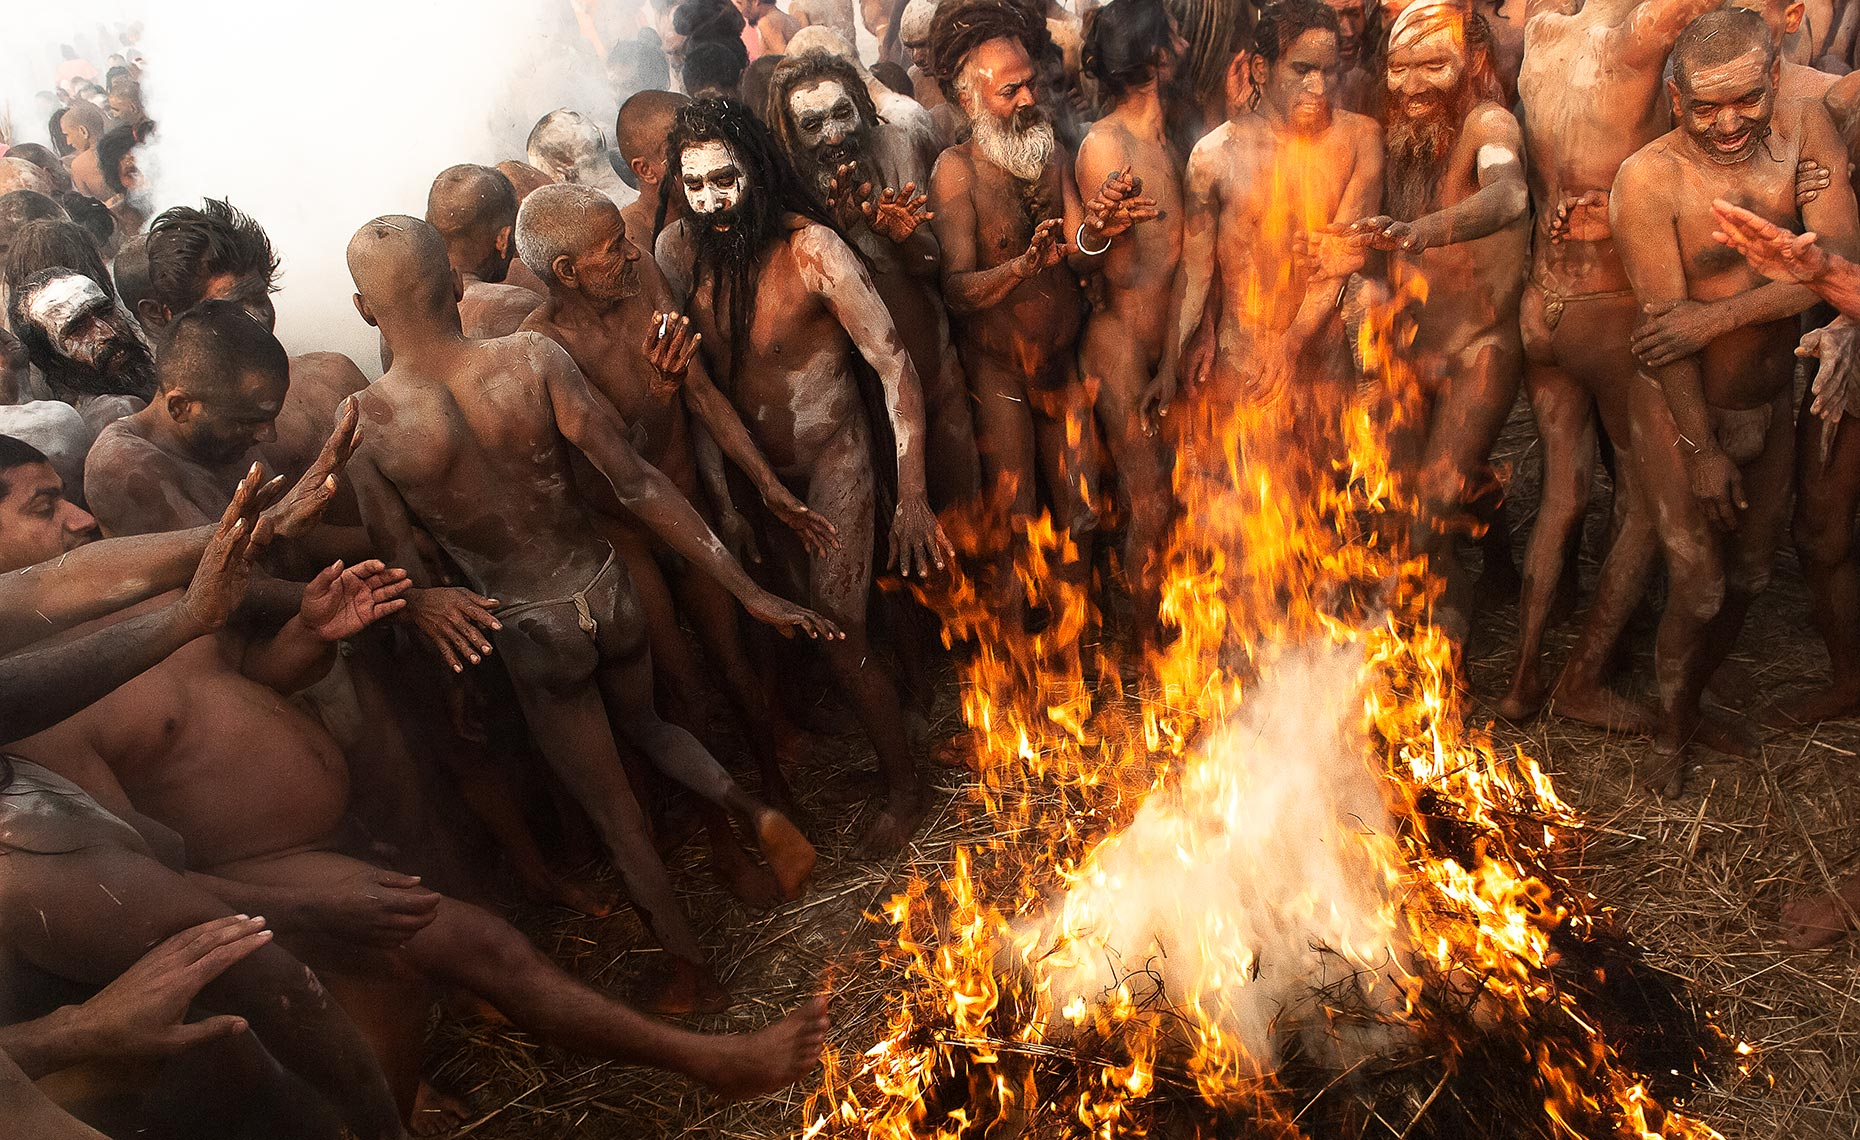 Naga Naked Sadhus on Bath Day, Kumbh Mela, Allahabad, India. Photo © Konstantino Hatzisarros 2010